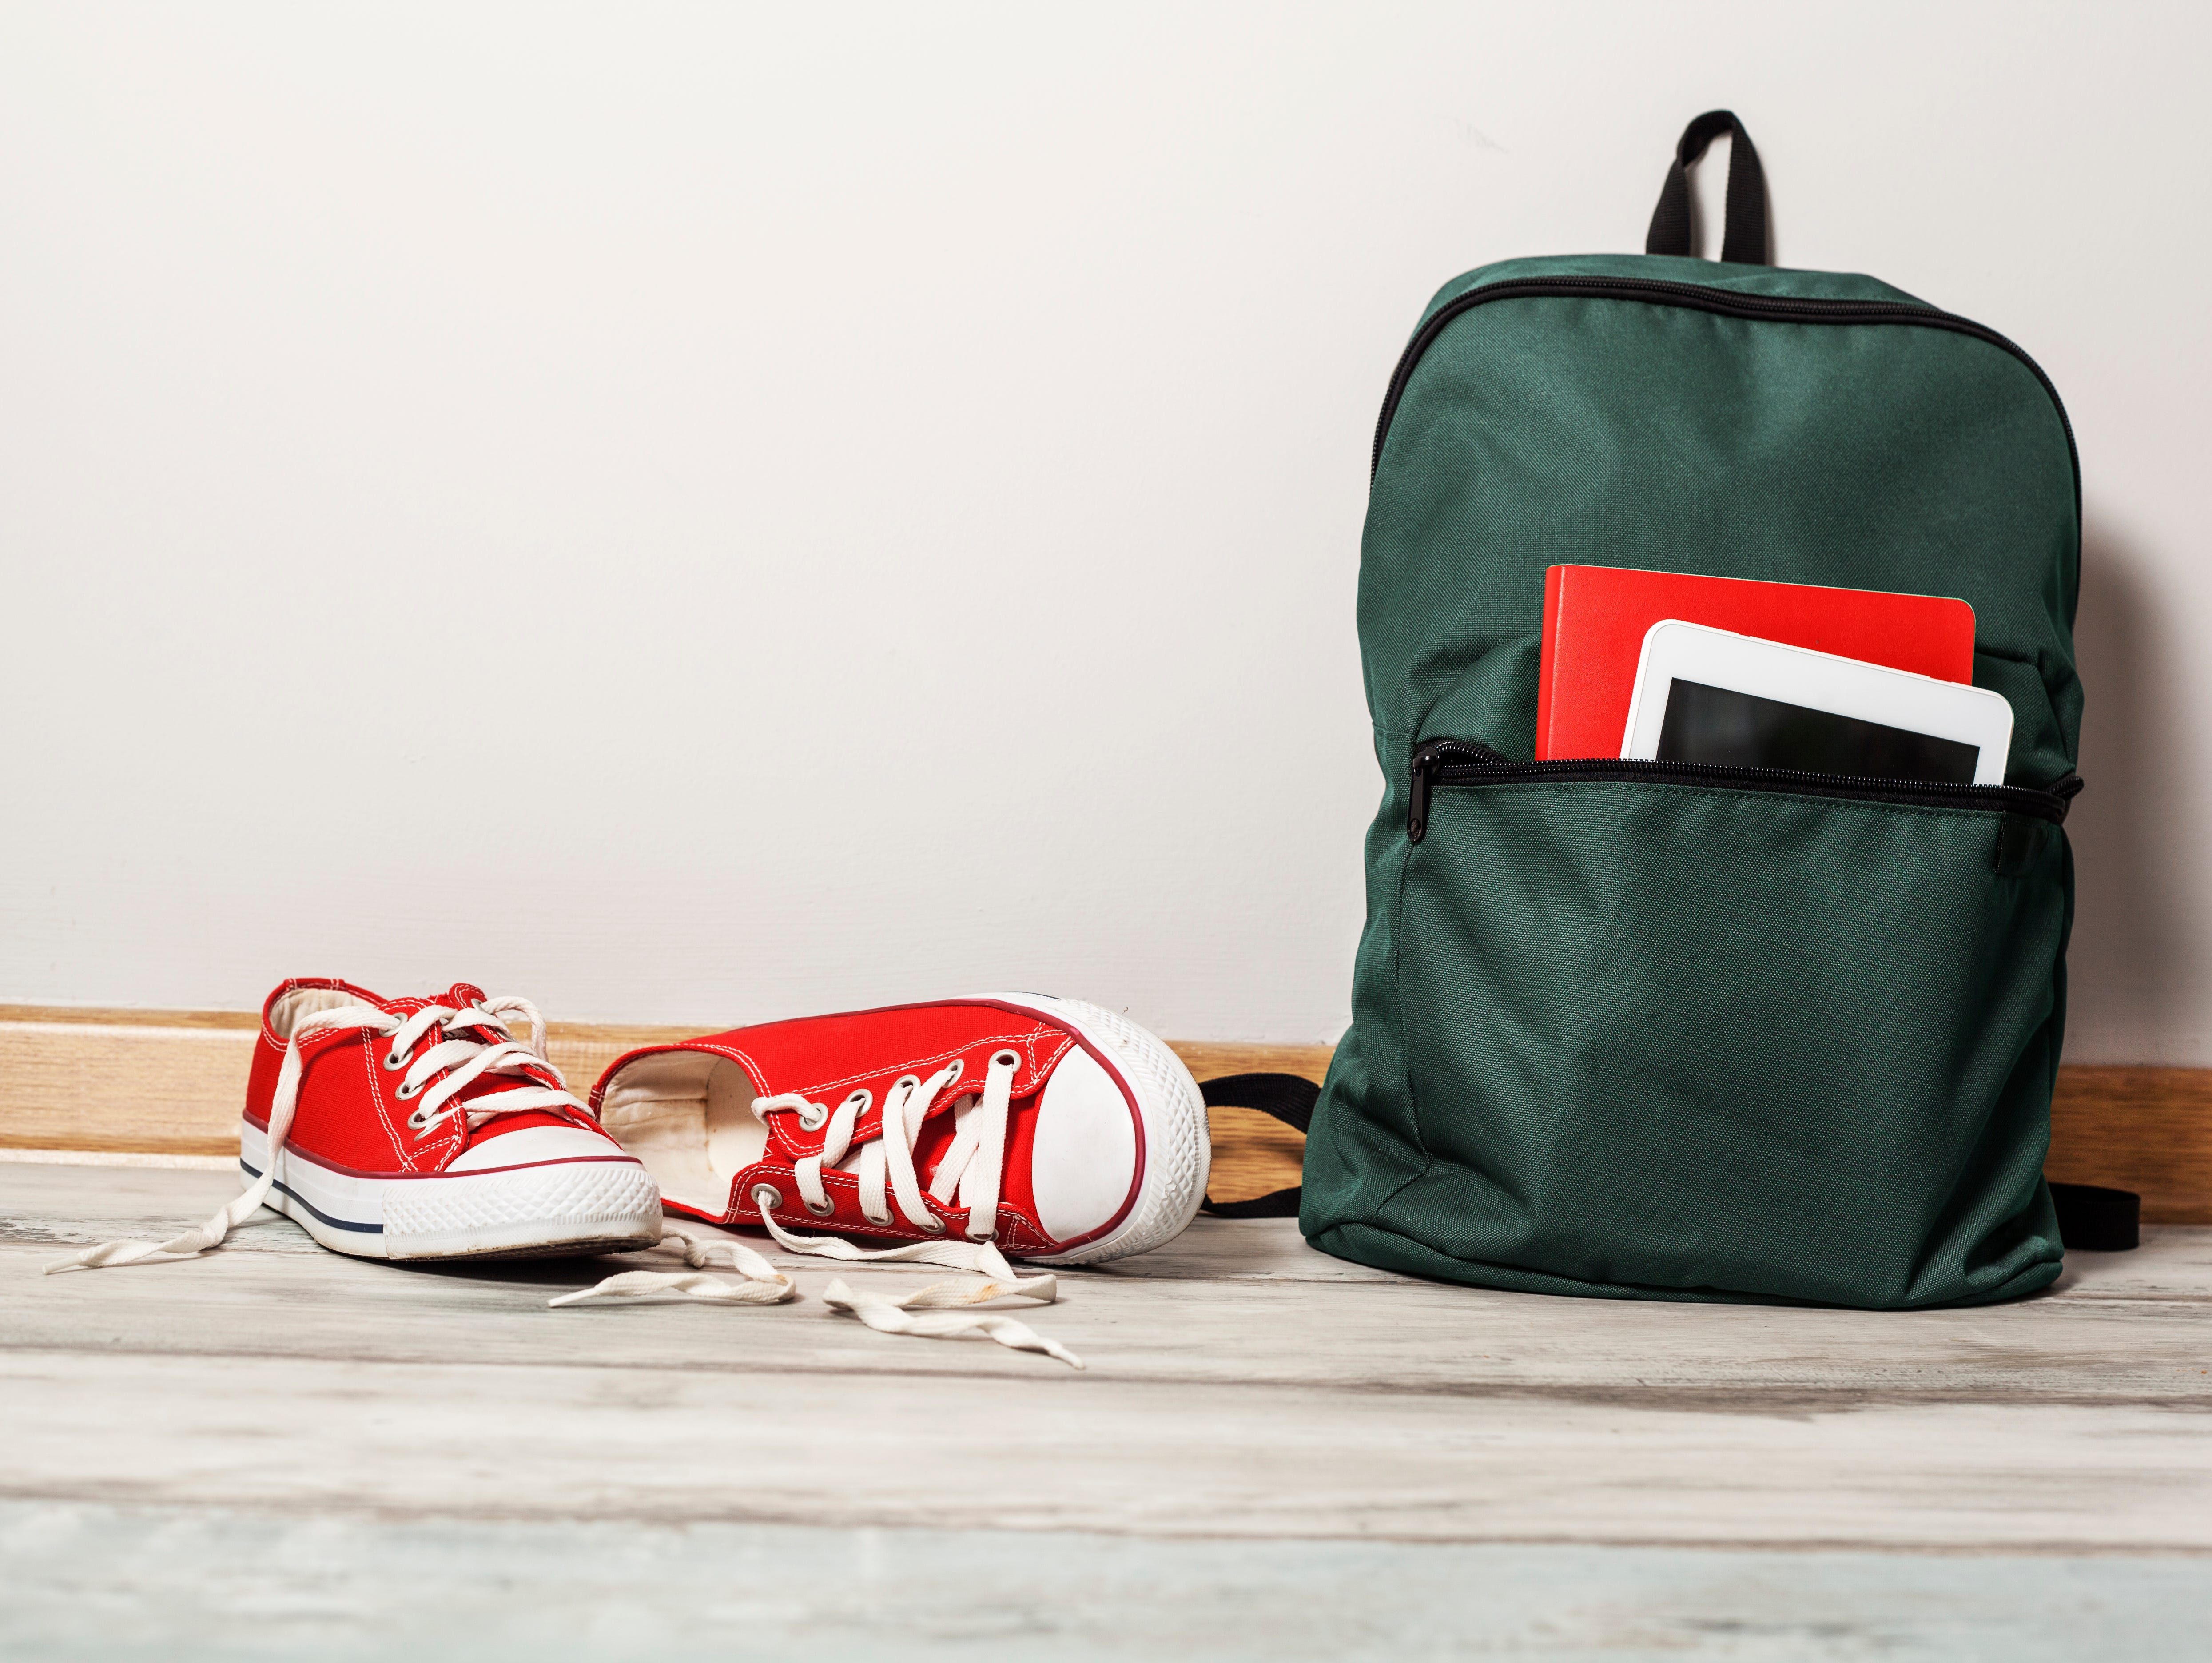 Roll into the school year with the sweetest gear. Enjoy $10 off your purchase of $50 dollars or more!